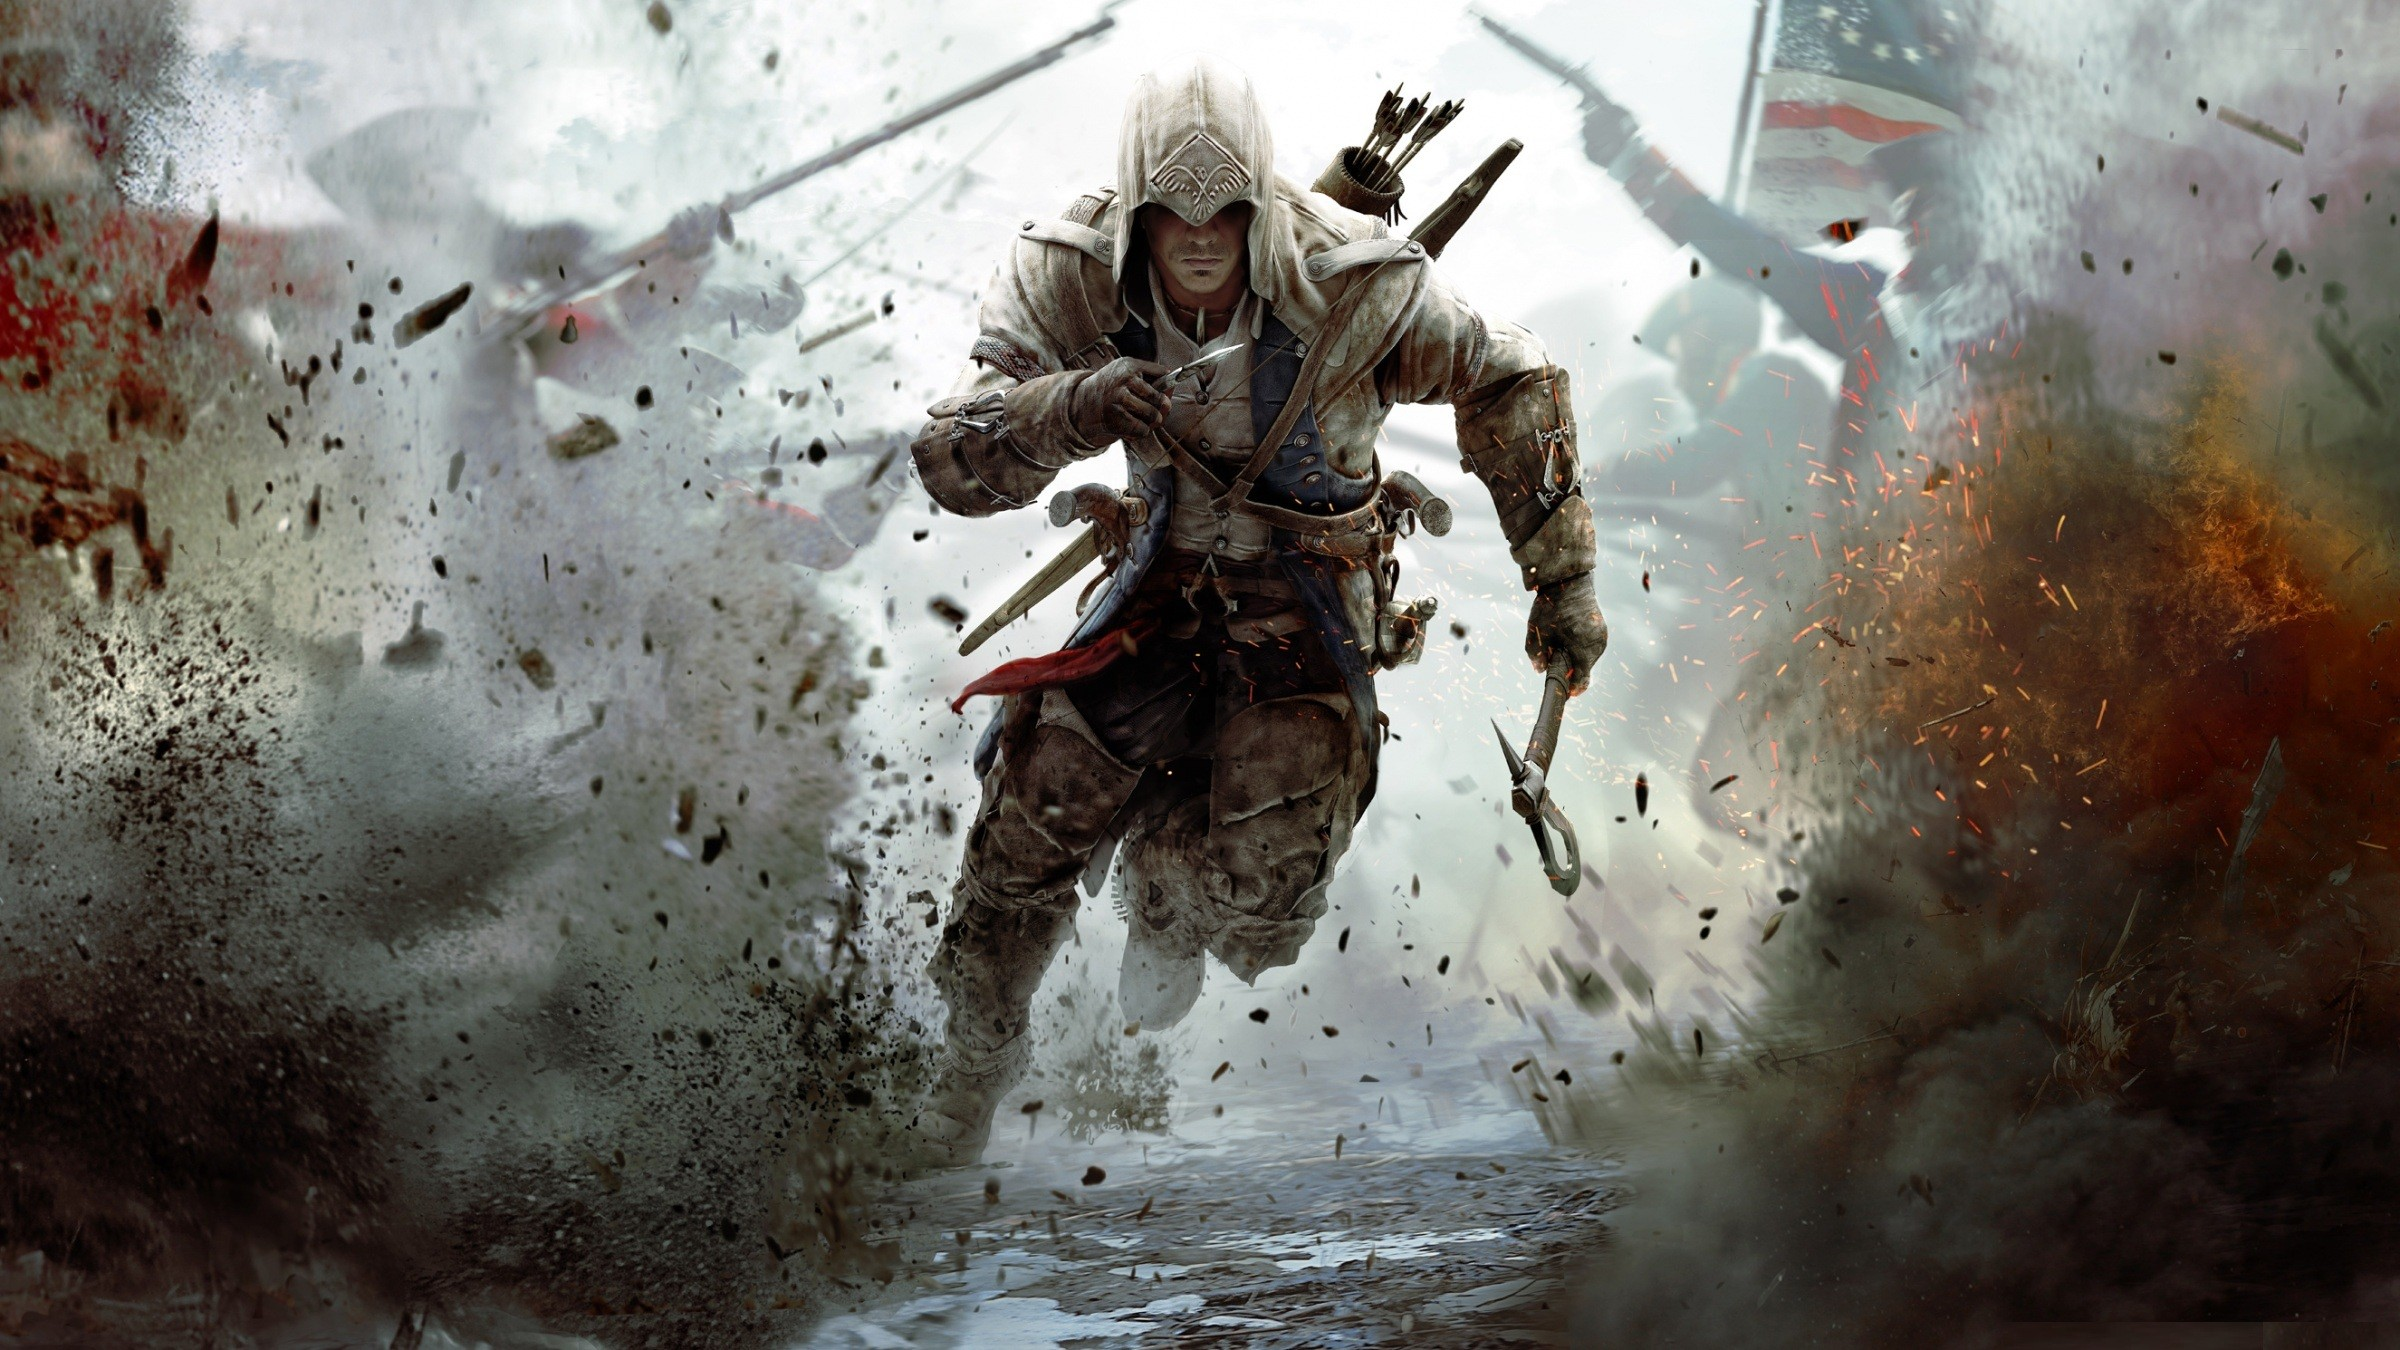 HD Wallpapers Widescreen 1080P 3D | … Creed 3-Game HD Widescreen  Wallpapers